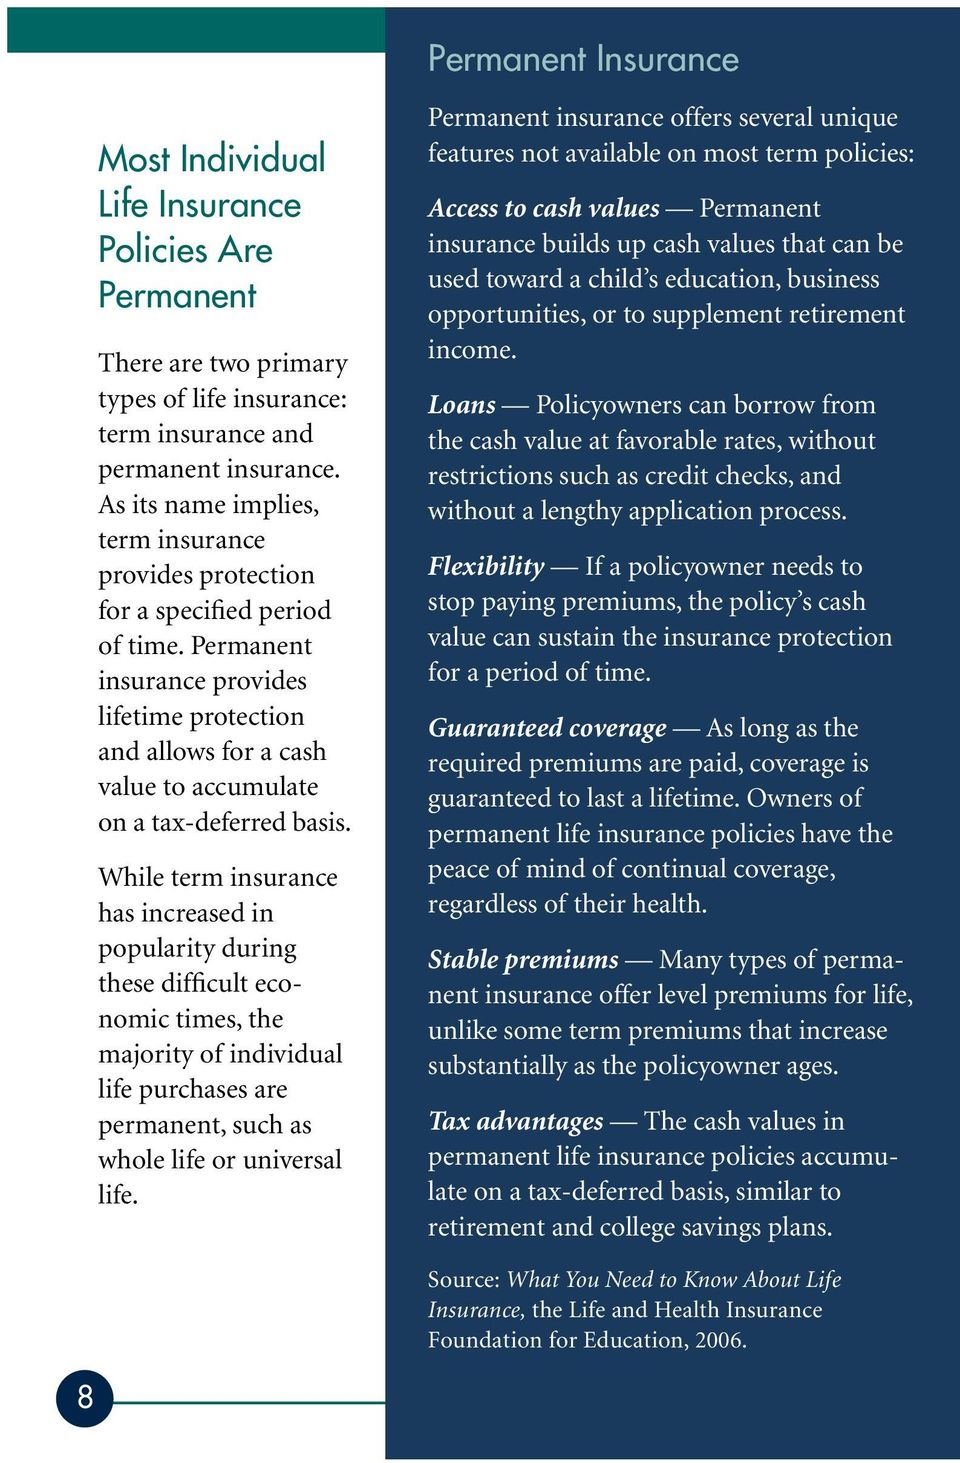 Permanent insurance provides lifetime protection and allows for a cash value to accumulate on a tax-deferred basis.